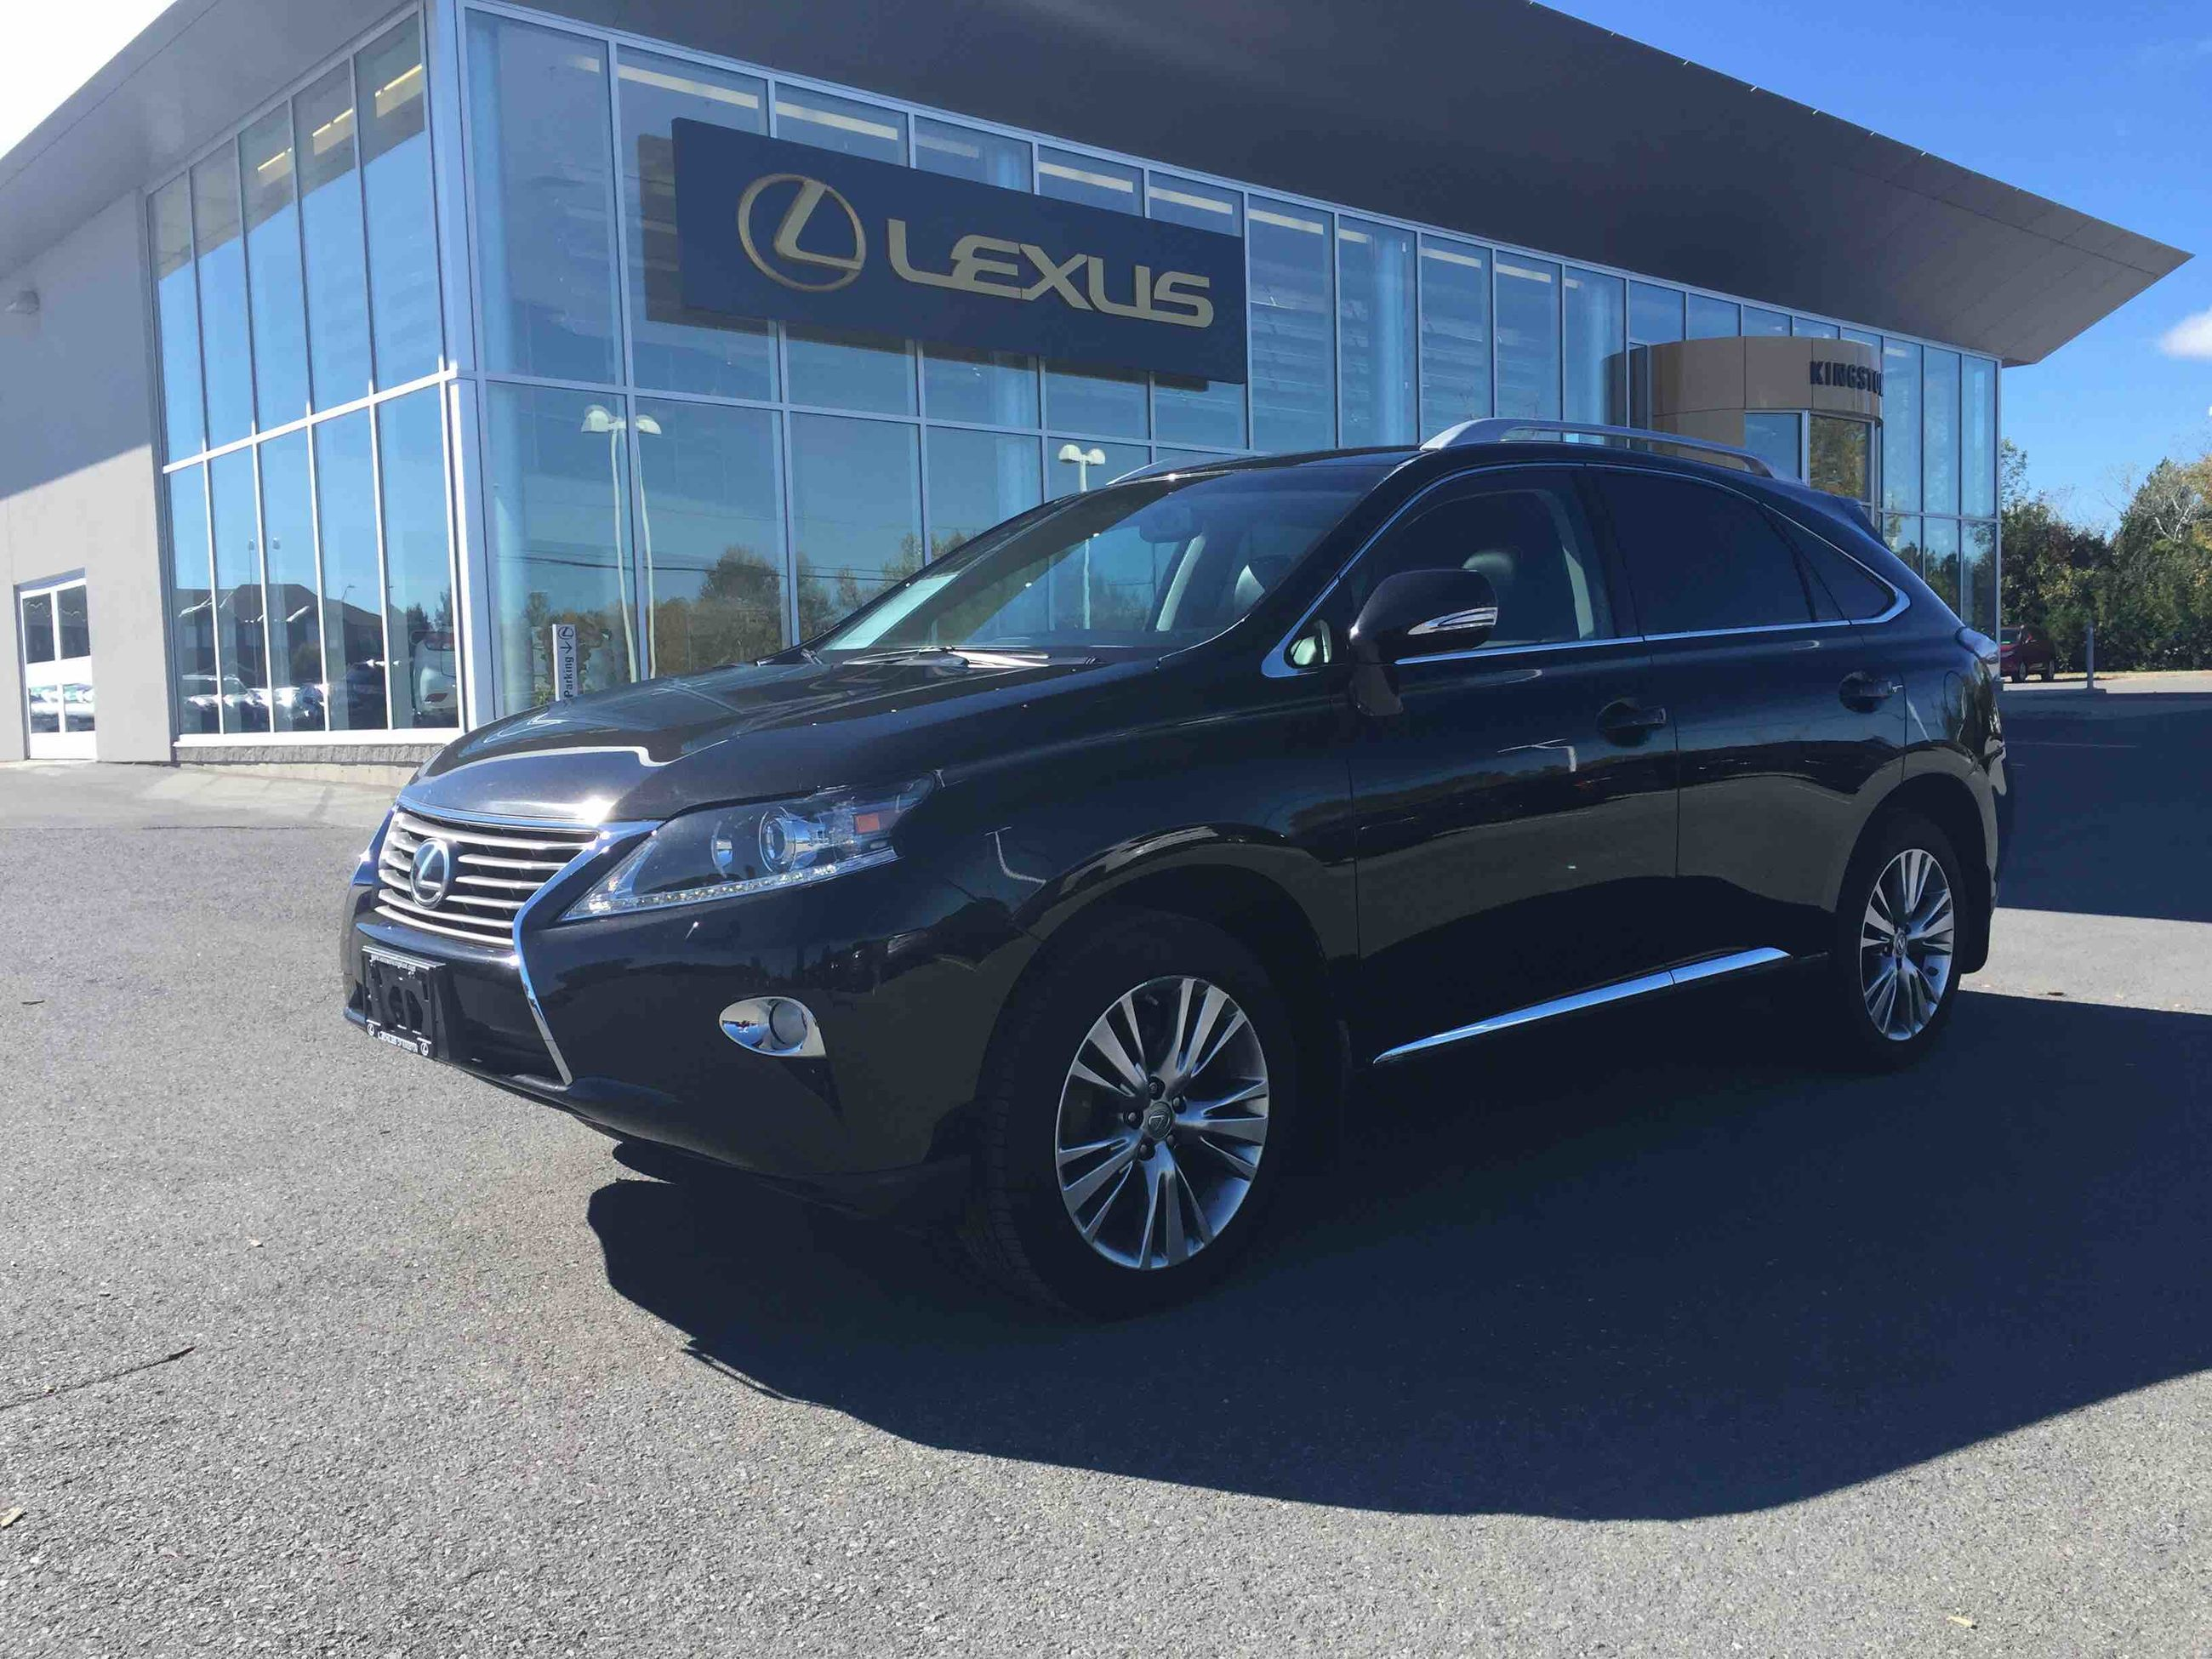 f unrated suv flair sport turbo fsport rx drive first lexus